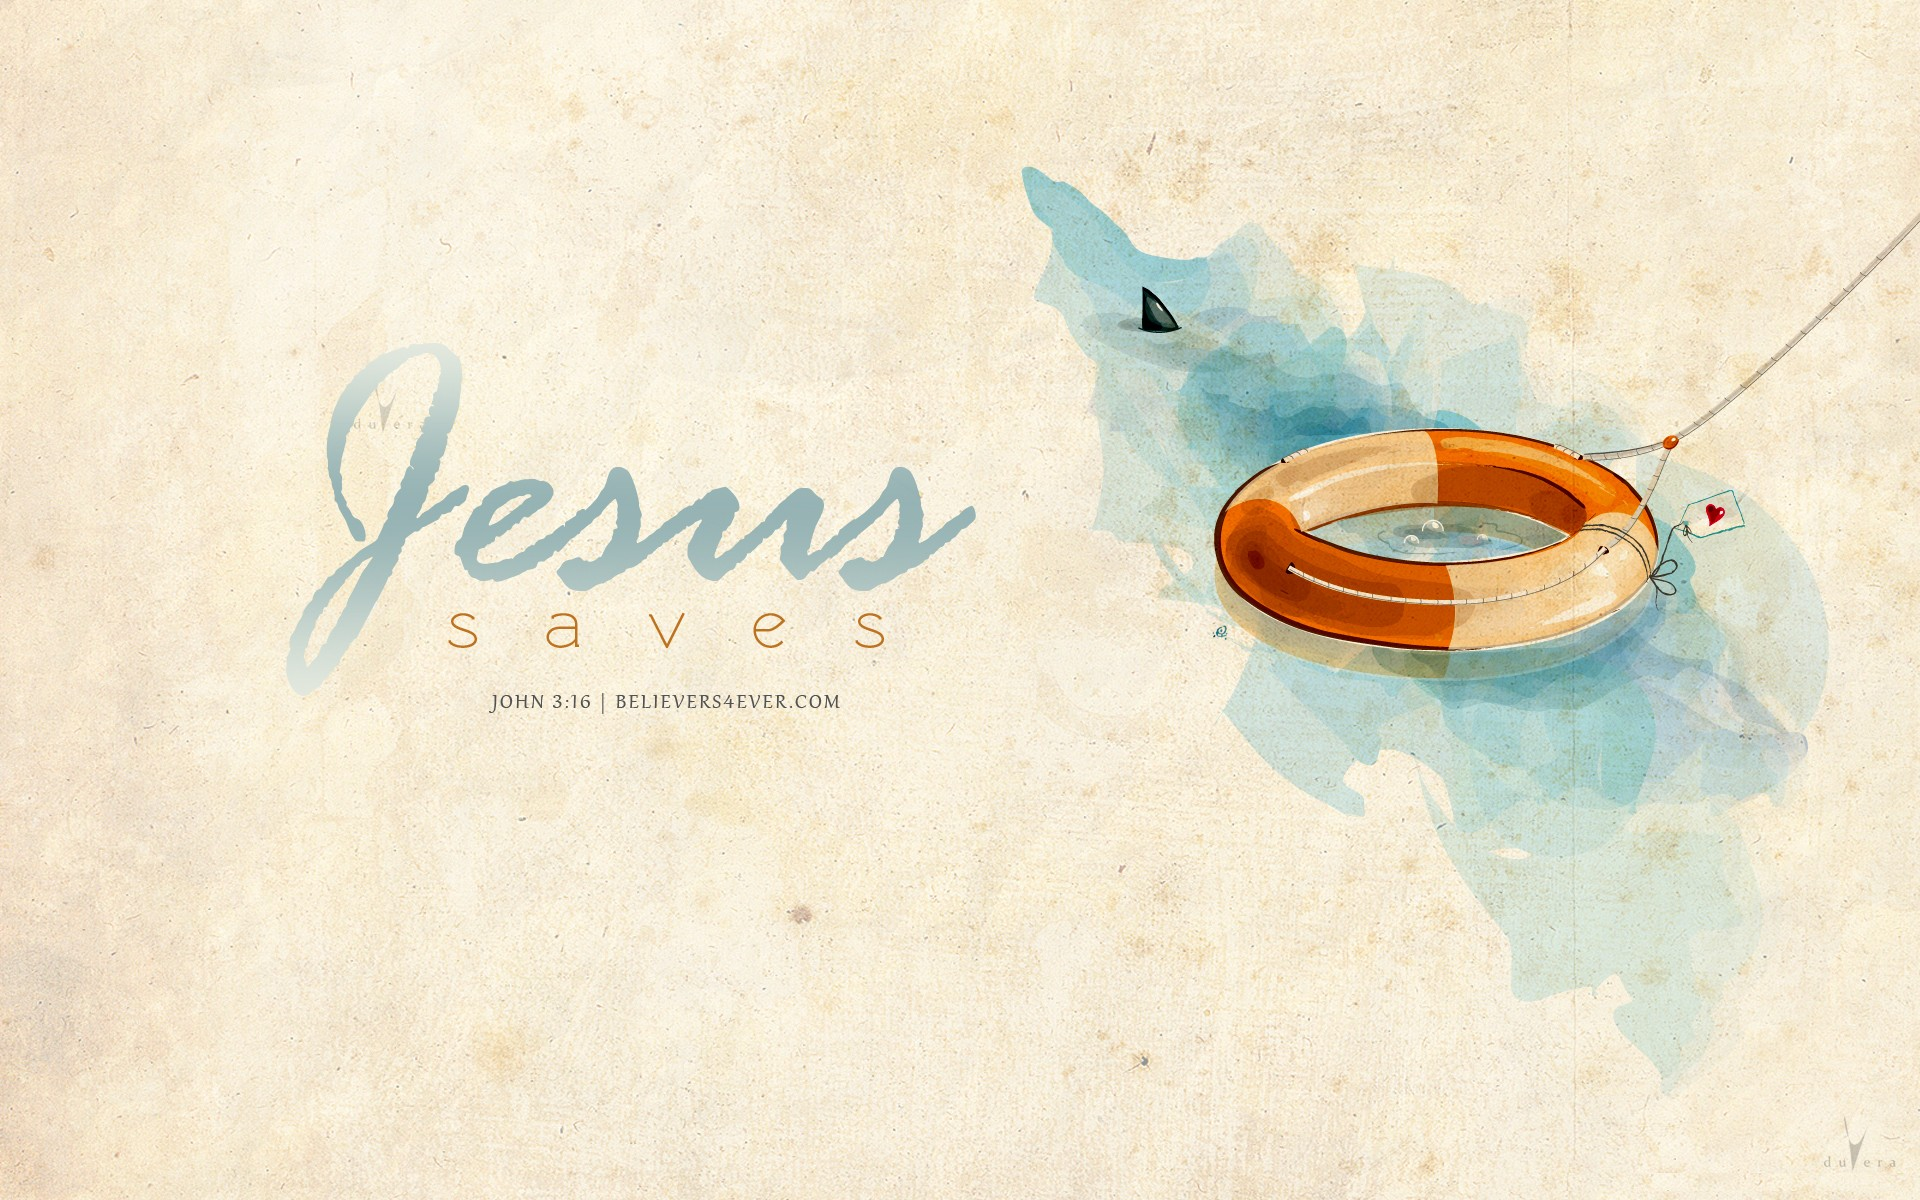 christian wallpaper download free awesome hd backgrounds for